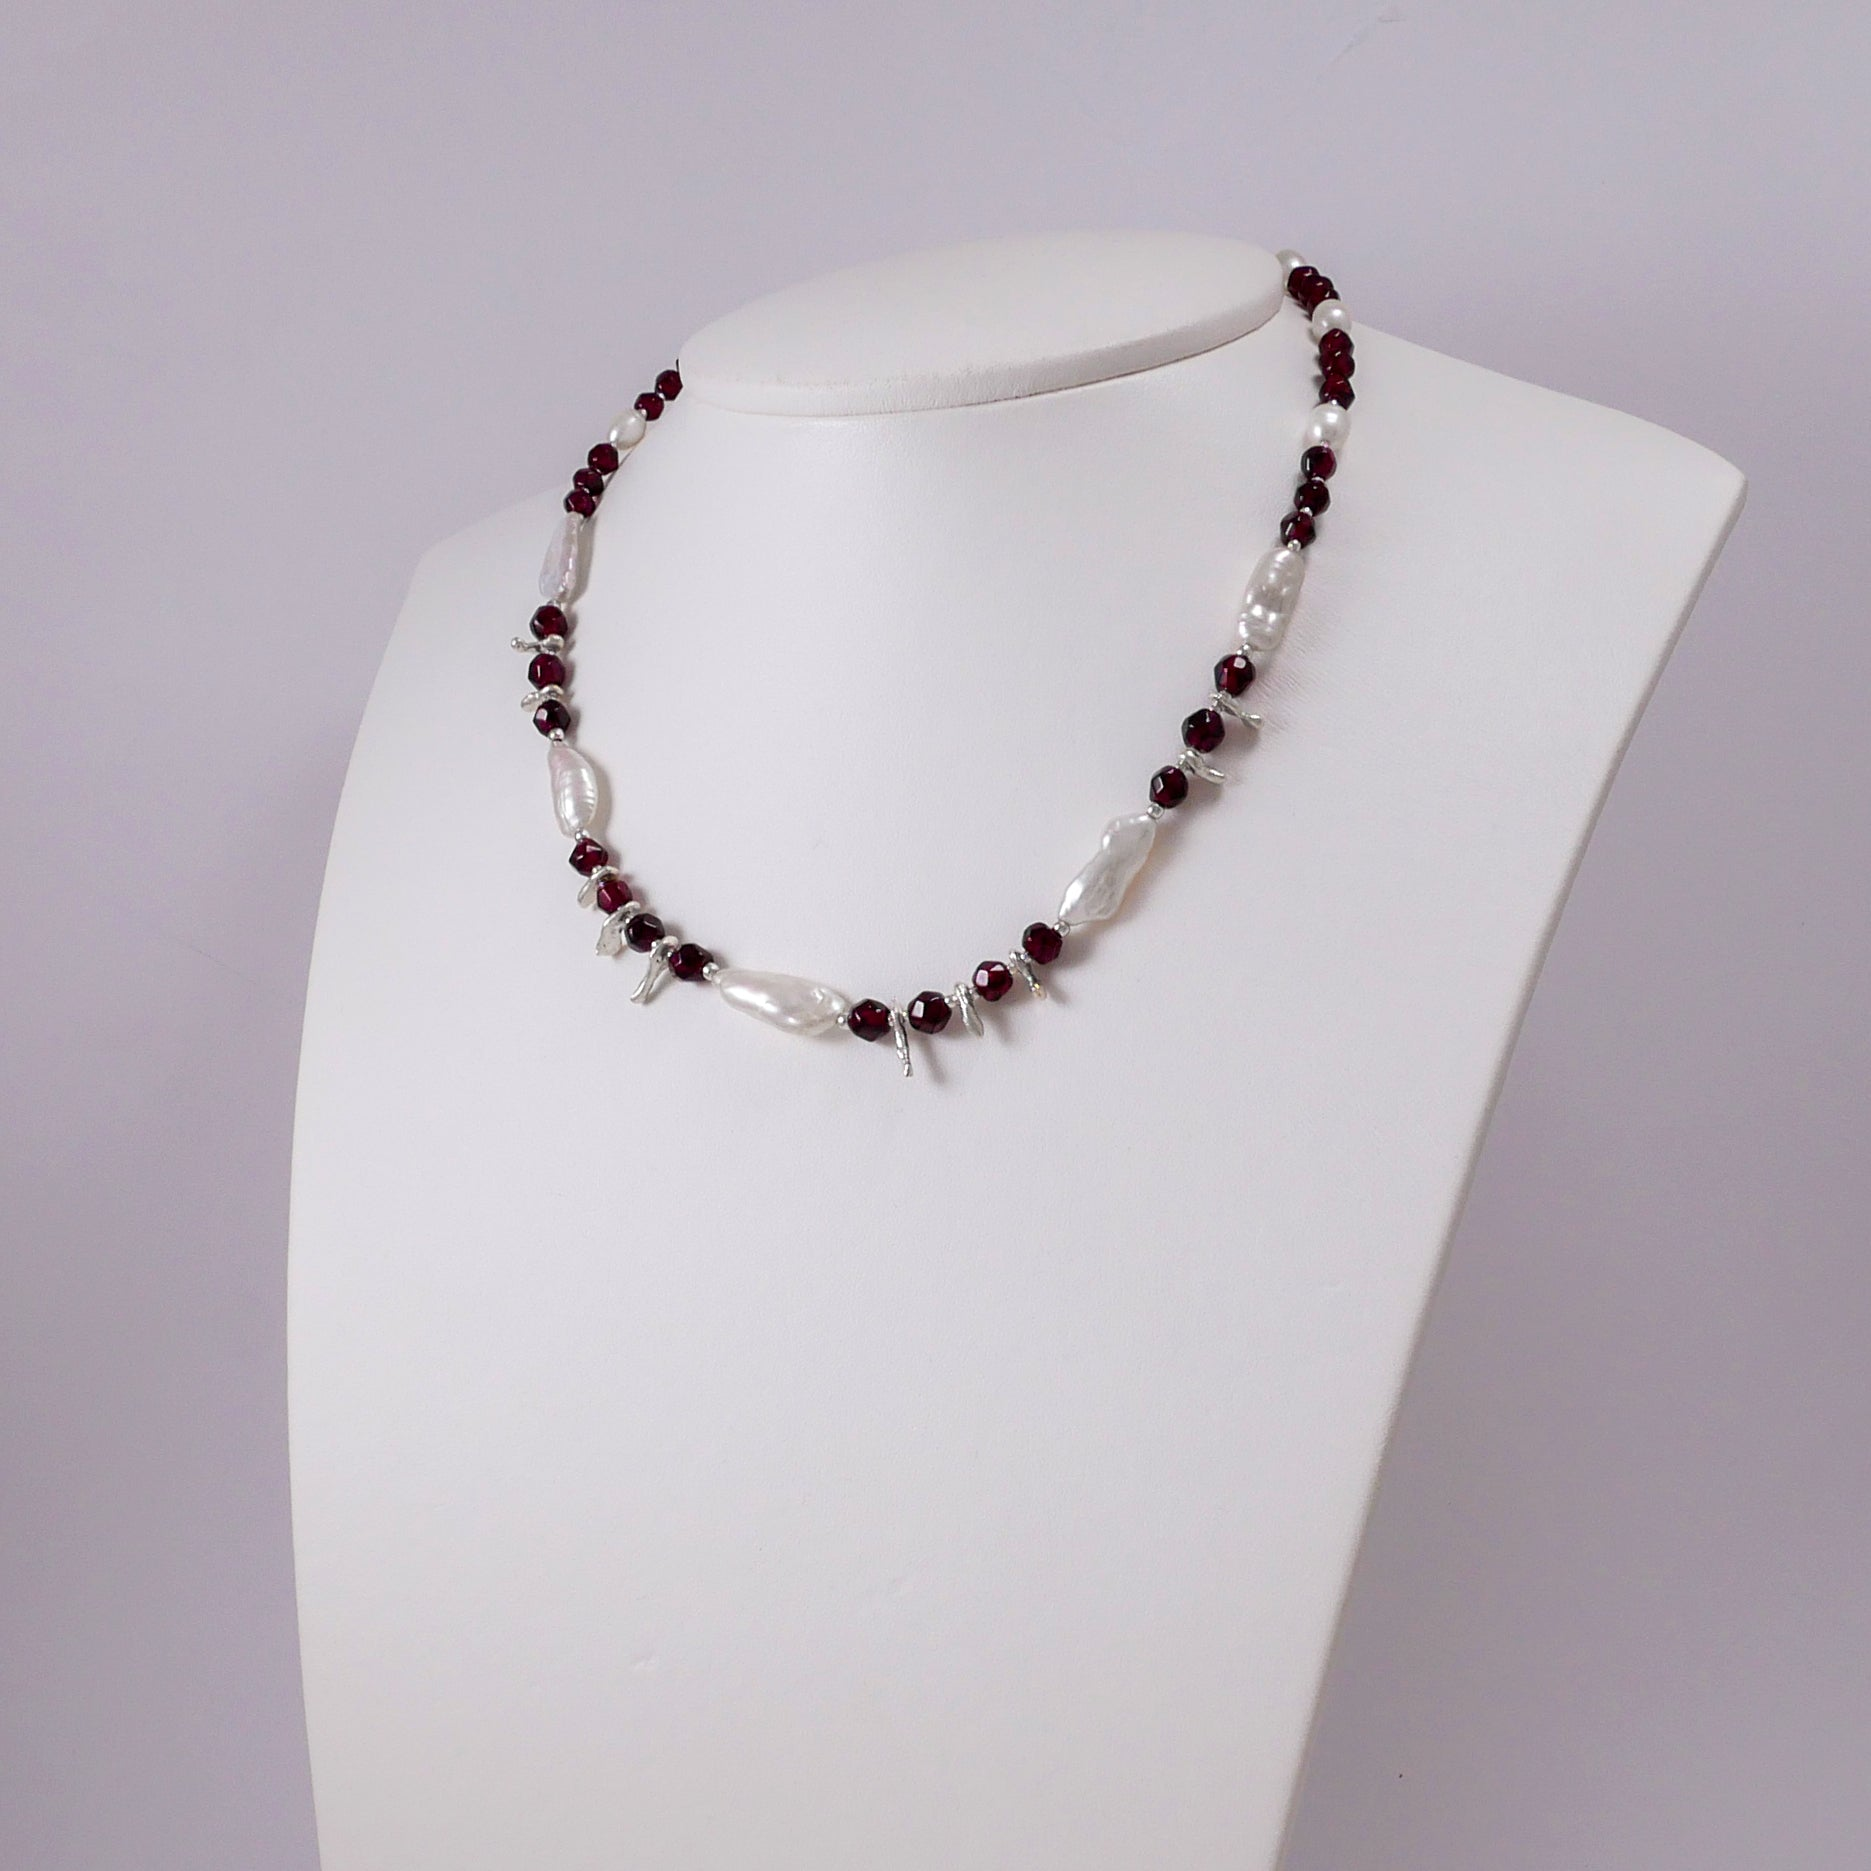 Faceted Garnets, Pearls, and Sterling Silver Necklace - Katerina Roukouna